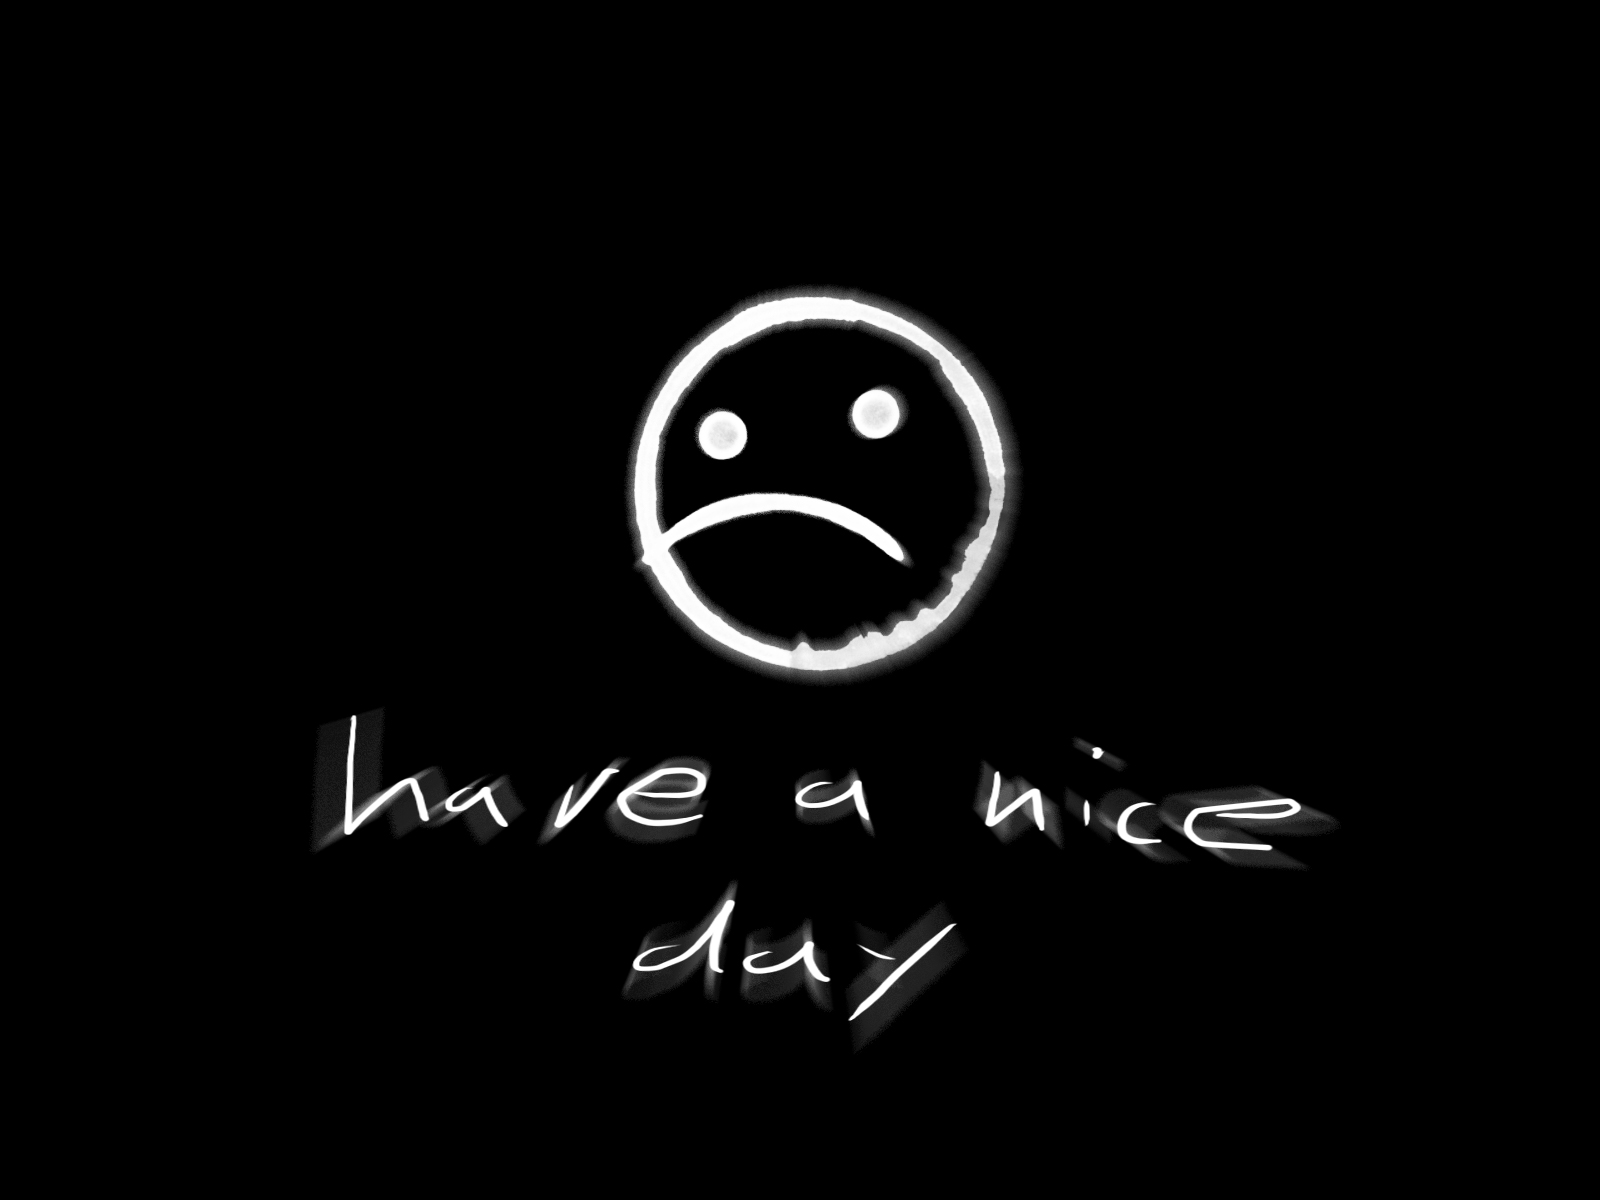 have a nice day wallpaper desktop - Mobile wallpapers